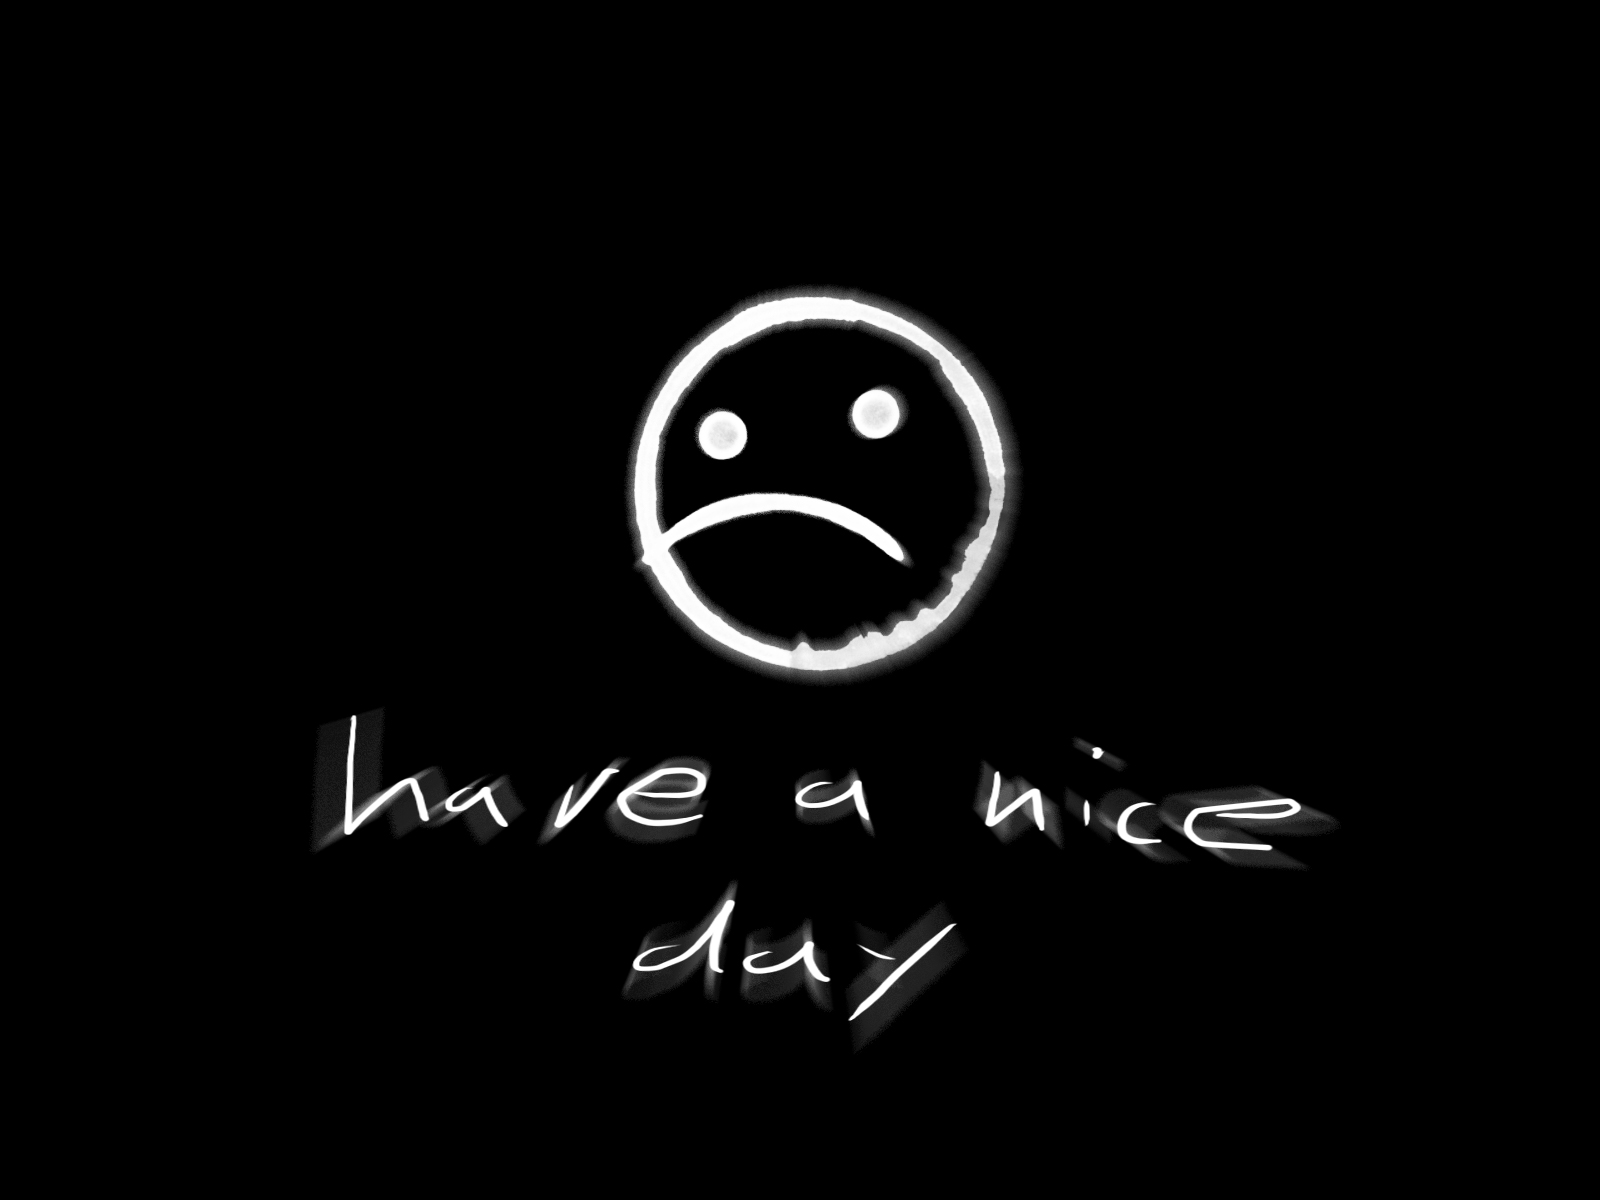 have a nice day wallpaper desktop - Mobile wallpapers